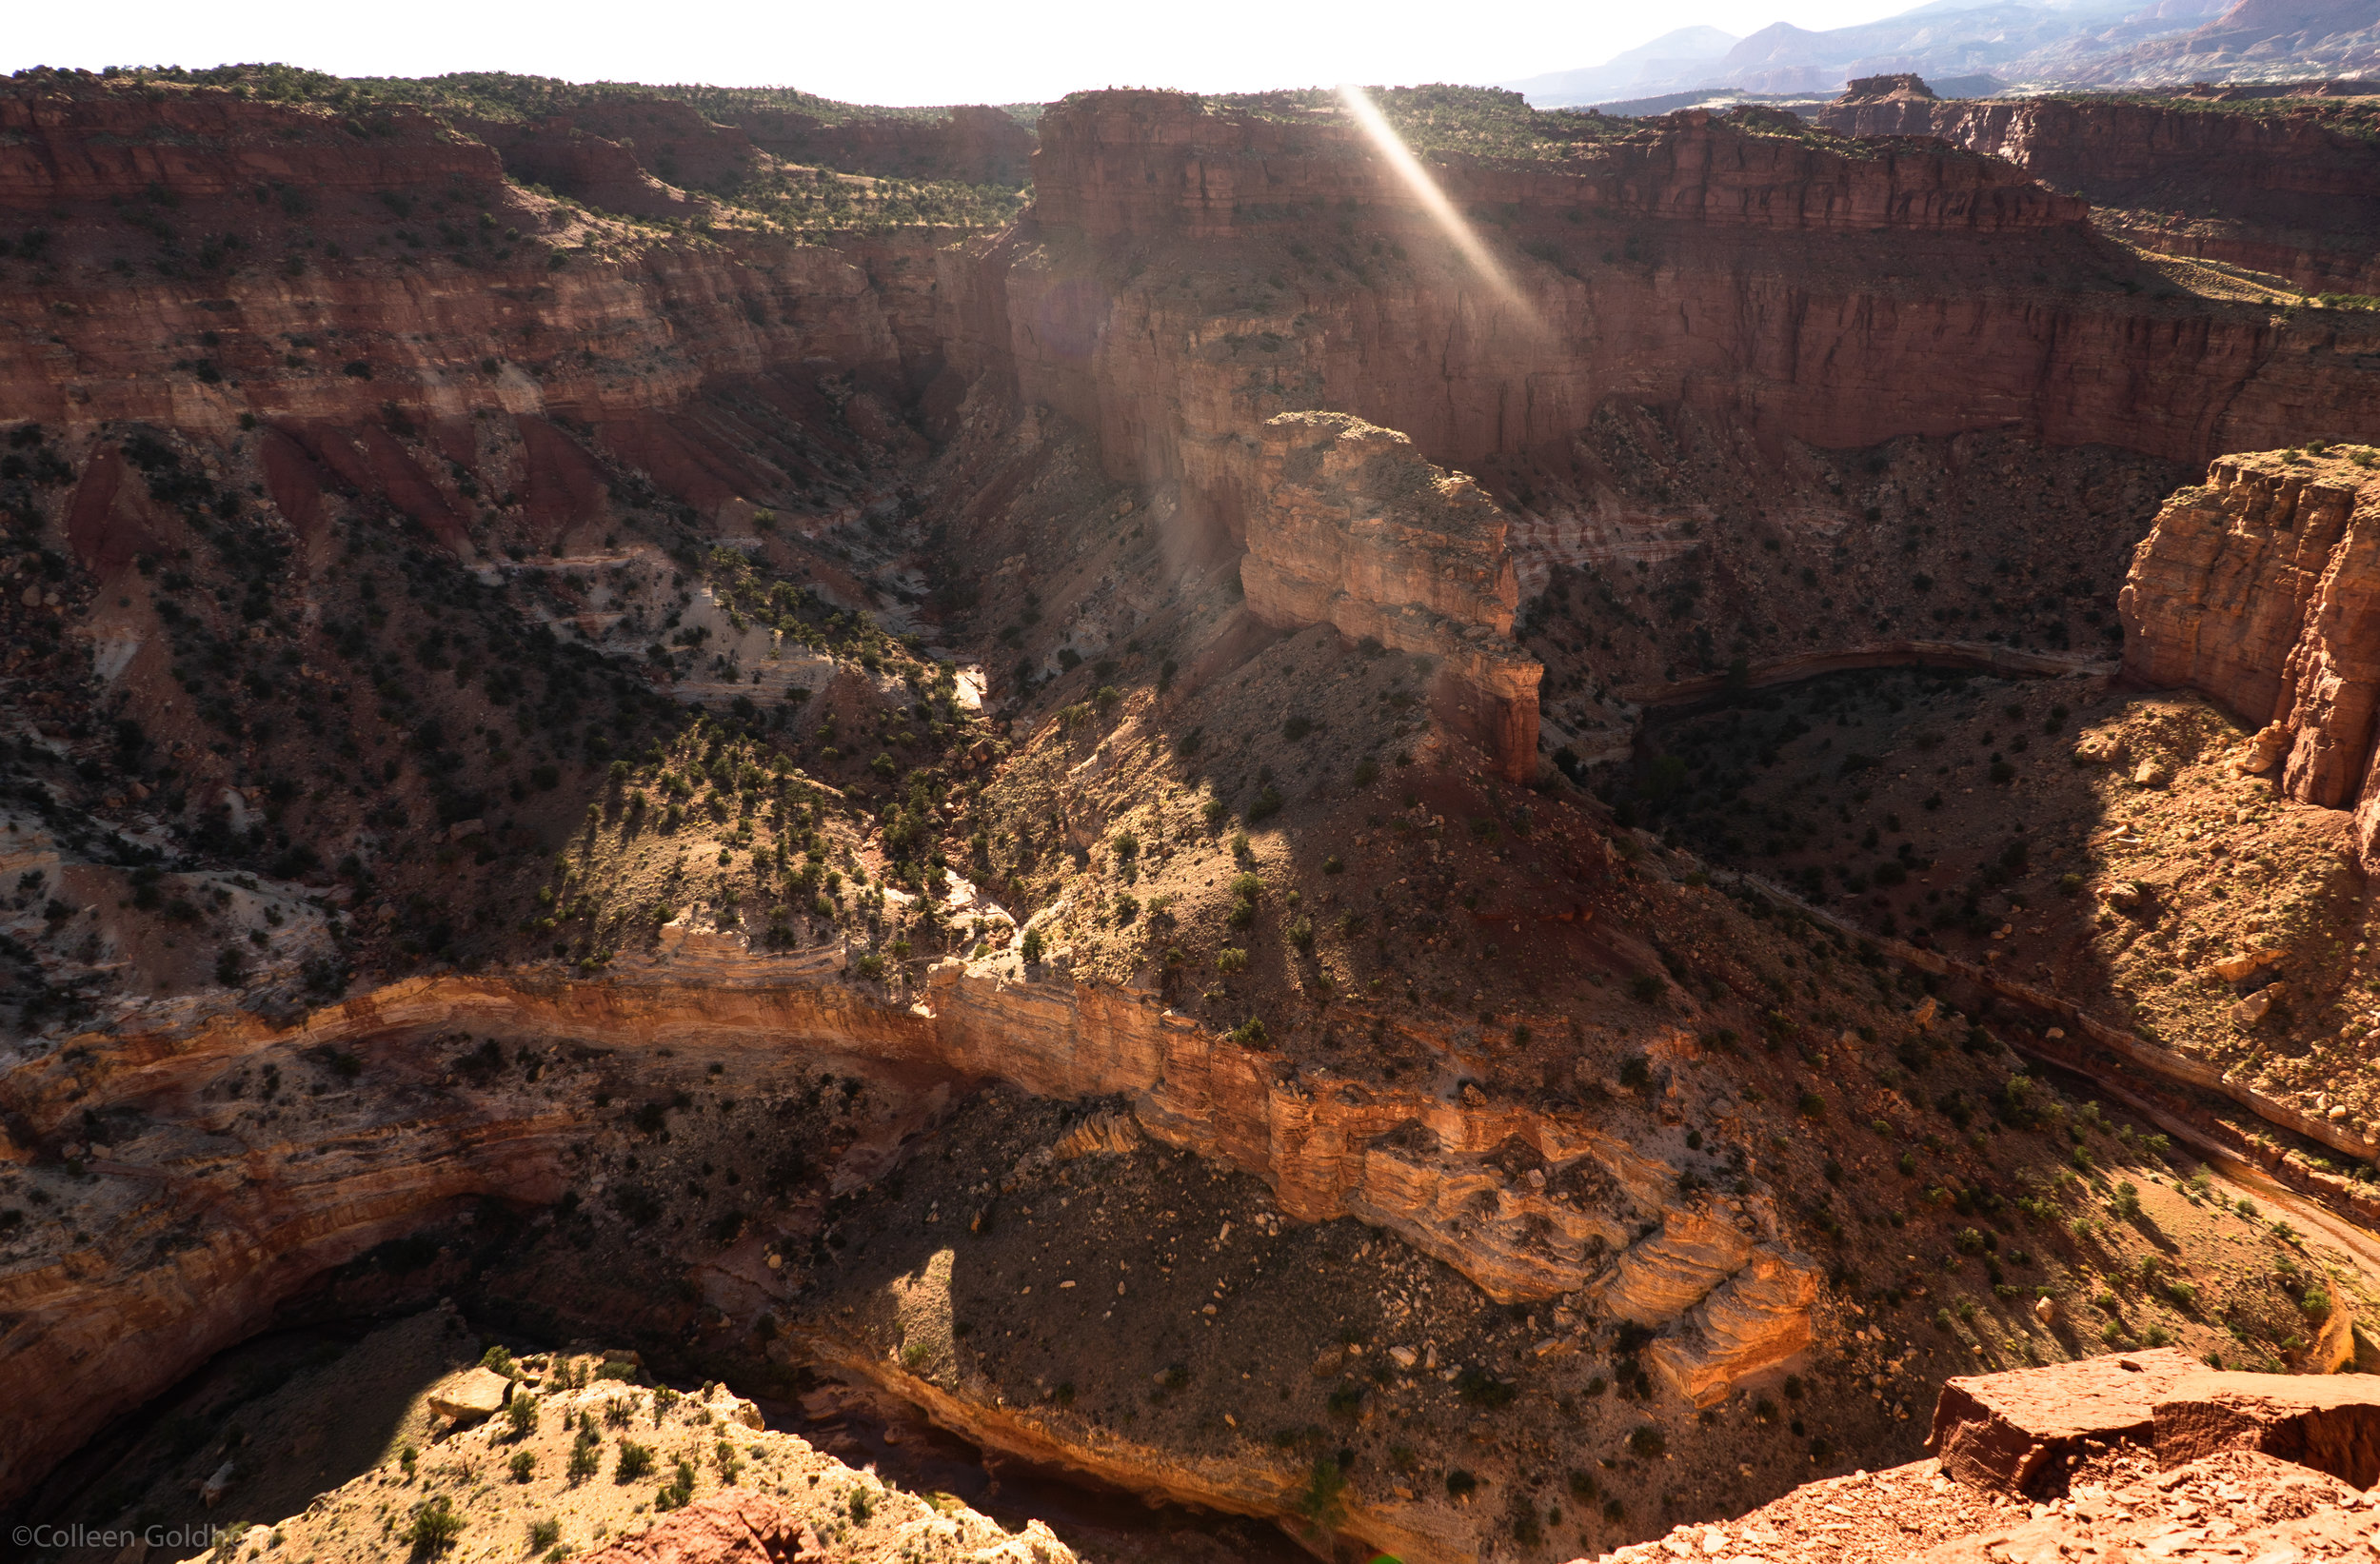 We walked up to Goosenecks Overlook without knowing too much about it, and were pleasantly surprised to find a little canyon within the park.